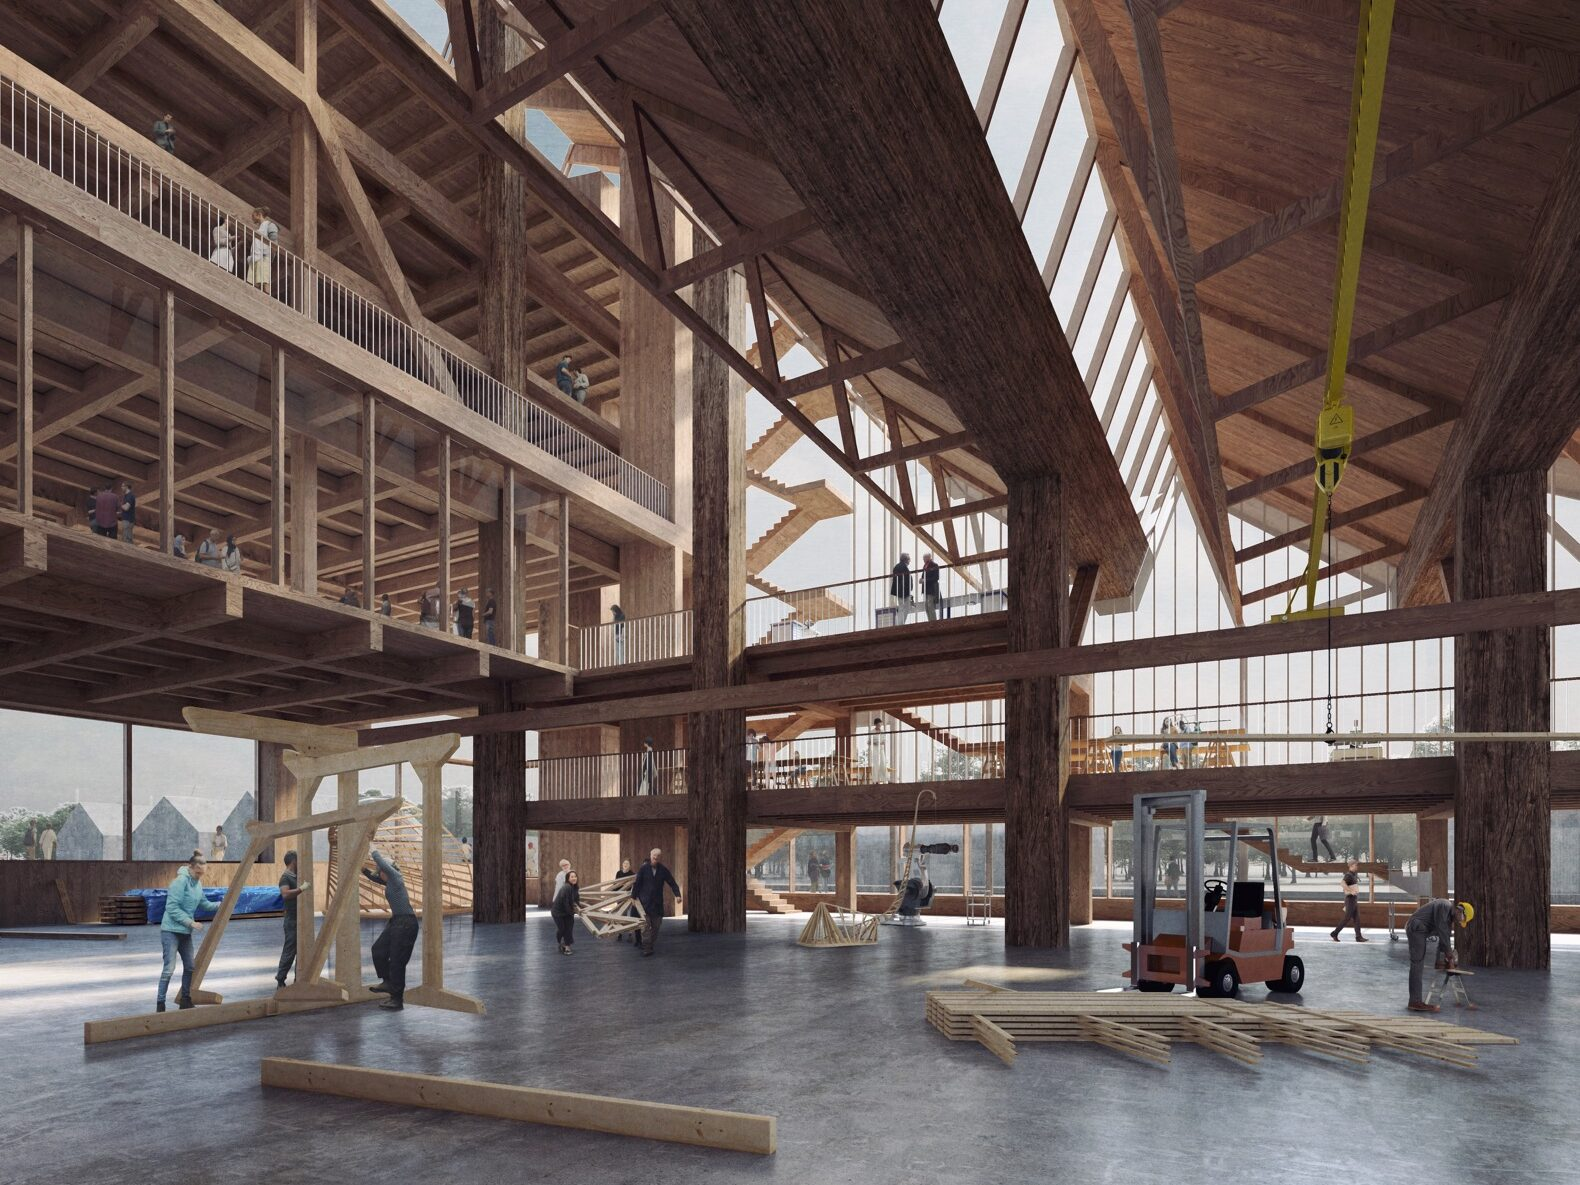 interior of a timber structure with cross beams